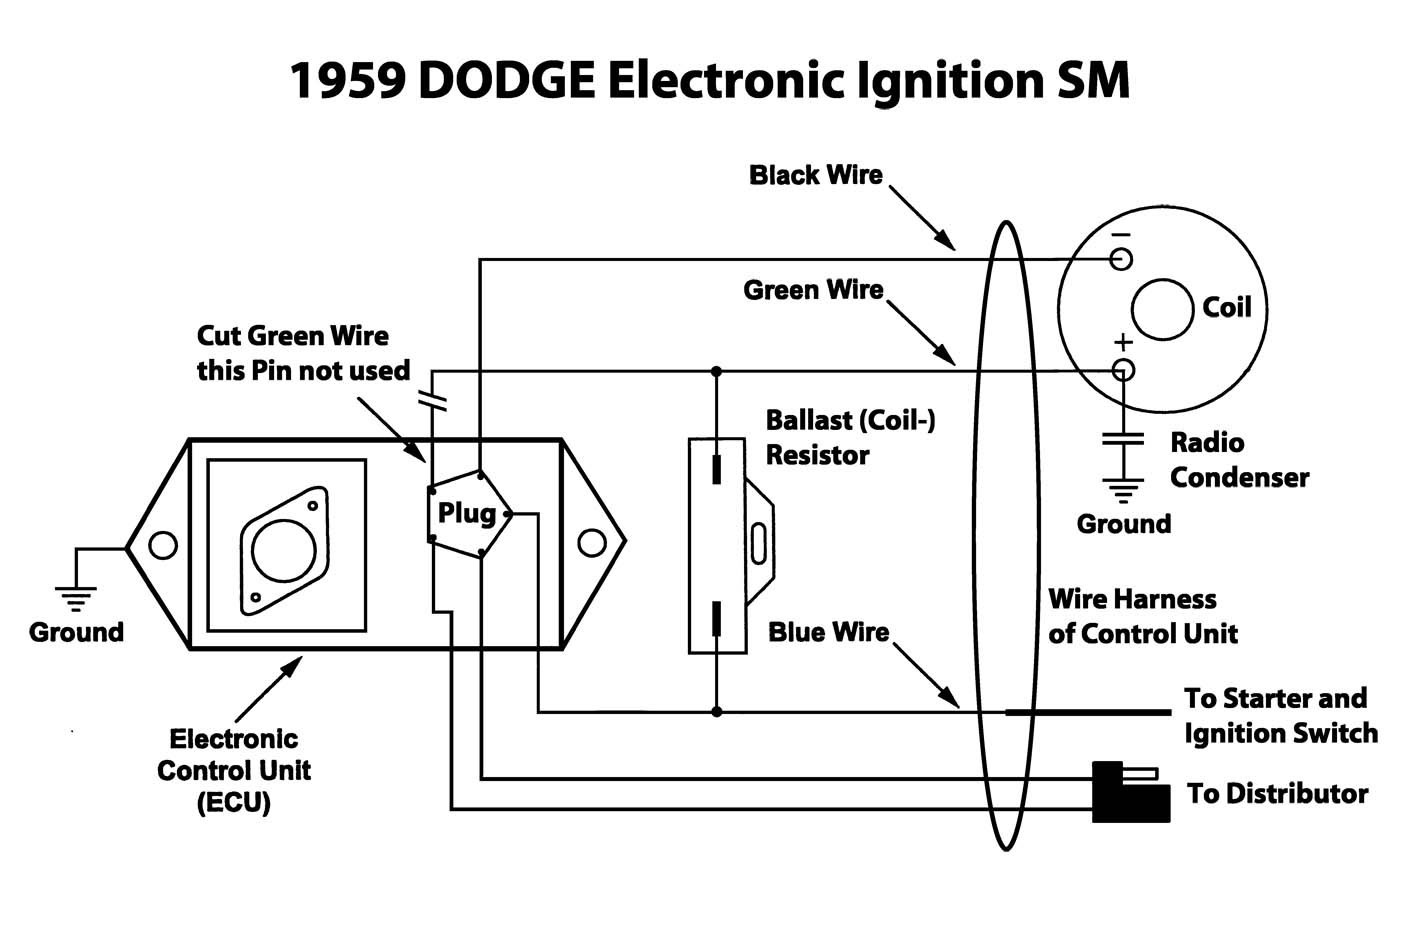 for electronic ignition wiring diagram ih 1 wlj savic family de \u2022 Dodge Truck Wiring Diagram 1971 dodge electronic ignition wiring diagram wiring diagram rh 14 geschiedenisanders nl chrysler electronic ignition wiring diagram chrysler electronic